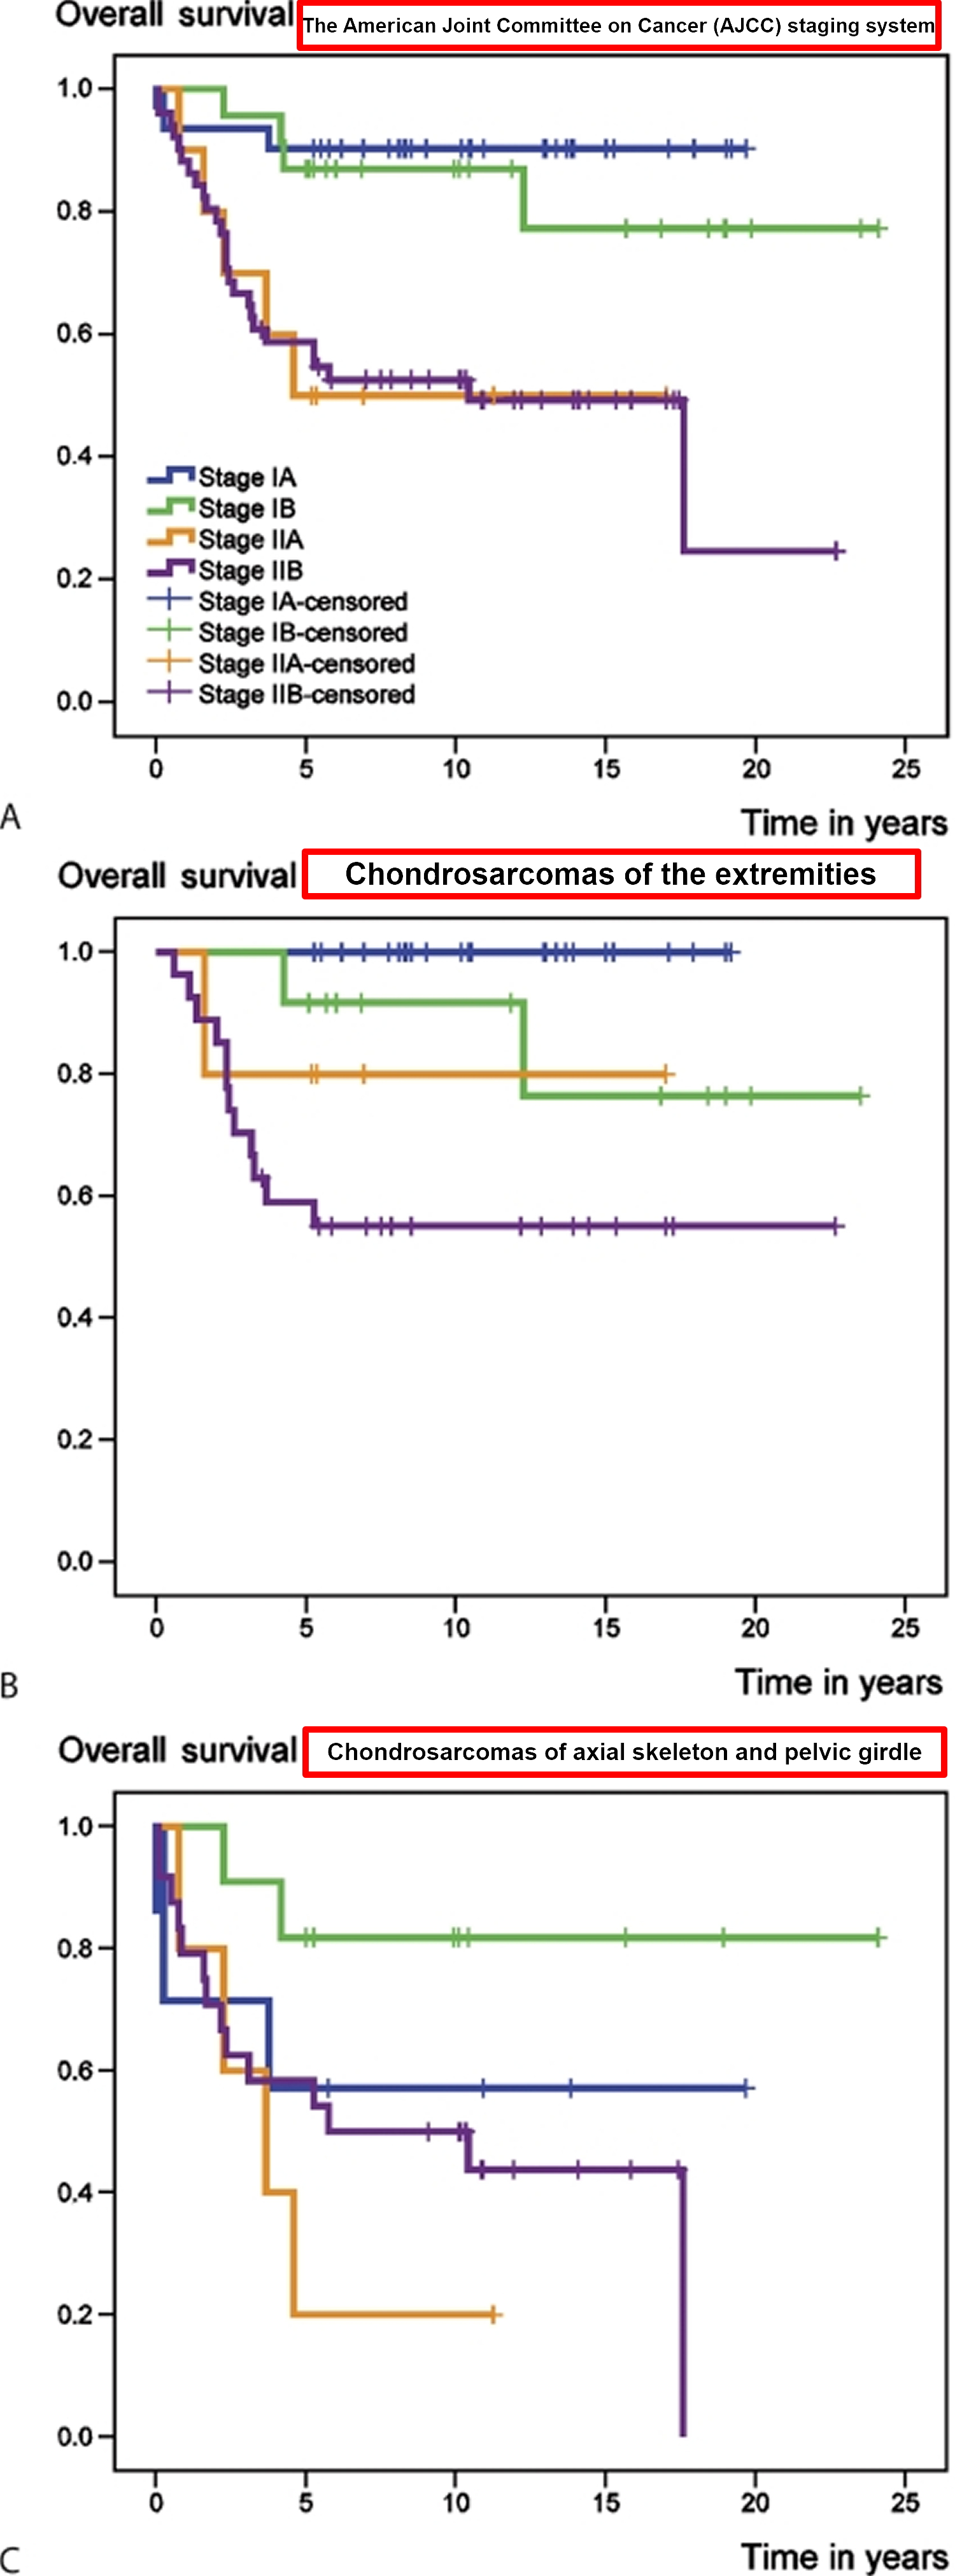 Chondrosarcoma overall survival rate